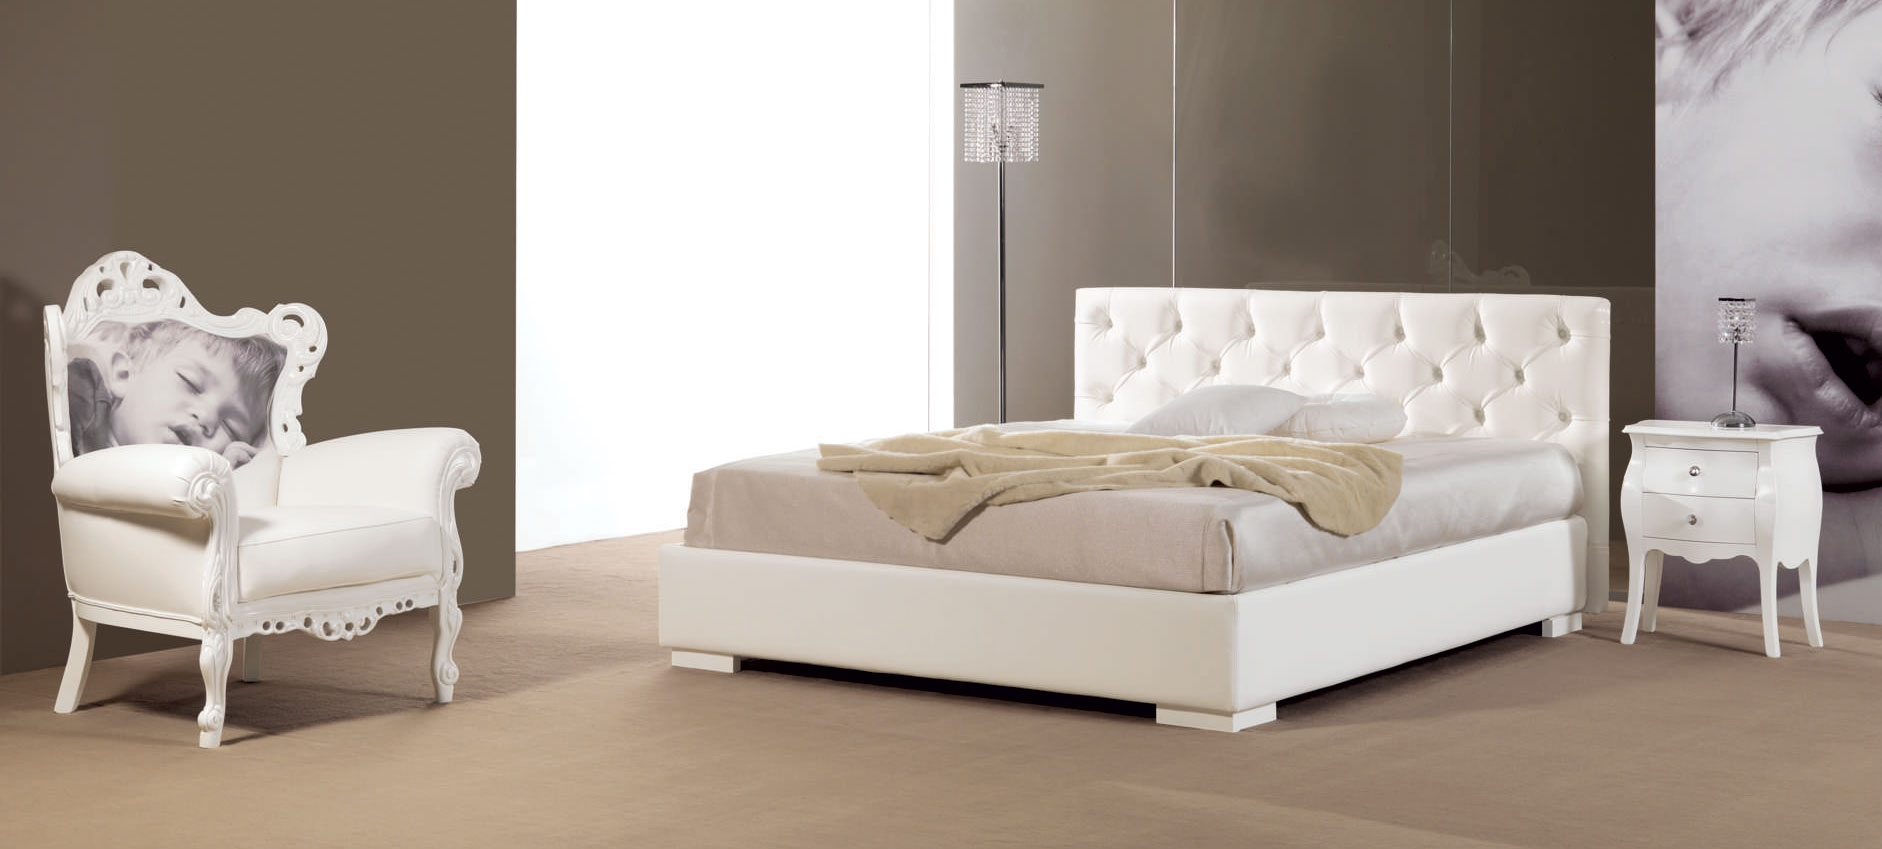 Lit double avec t te de lit capitonn simili cuir piermaria so nuit - Lit double design ...